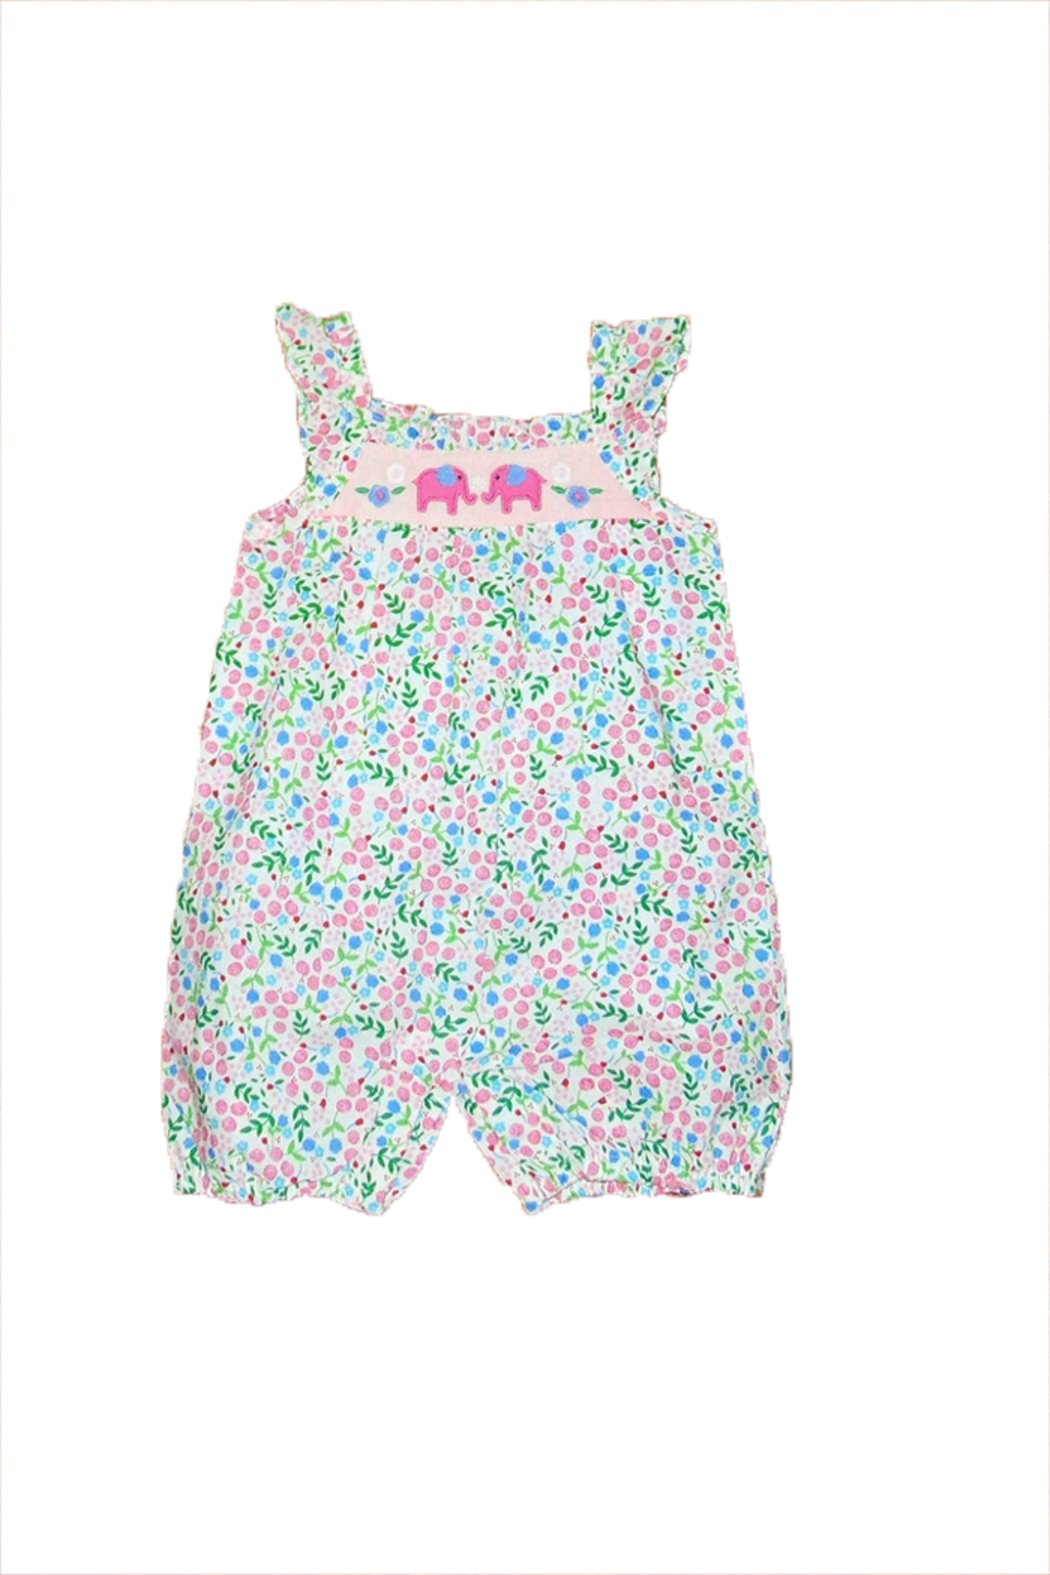 f03006686678 JoJo Maman Bebe Baby Girl Romper from Canada by Boutique Zias ...